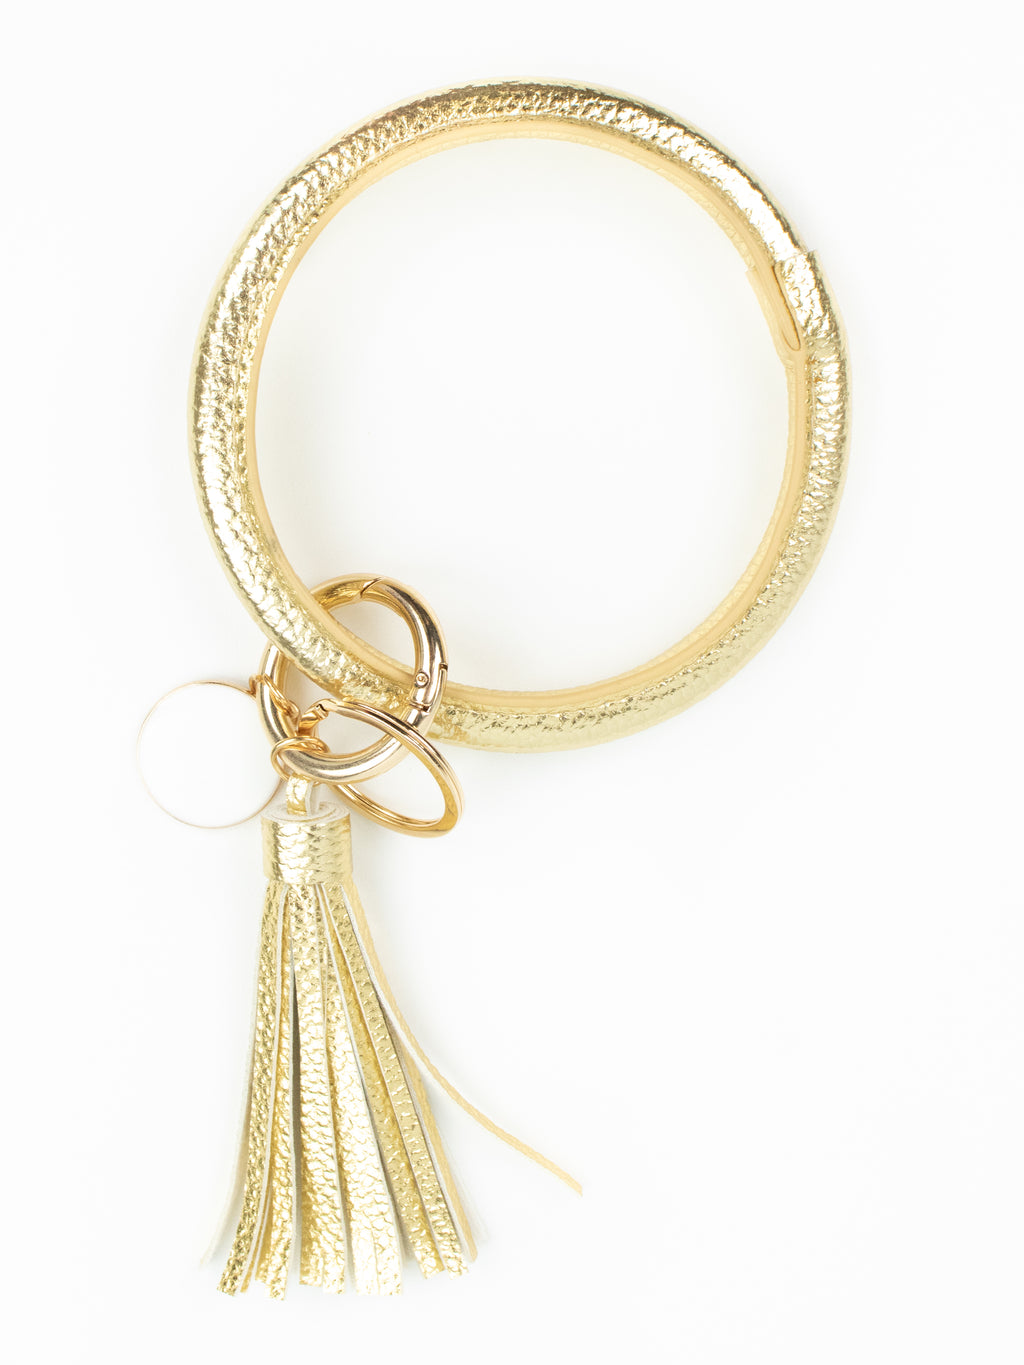 Bangle Bracelet Key Ring - Gold Metallic